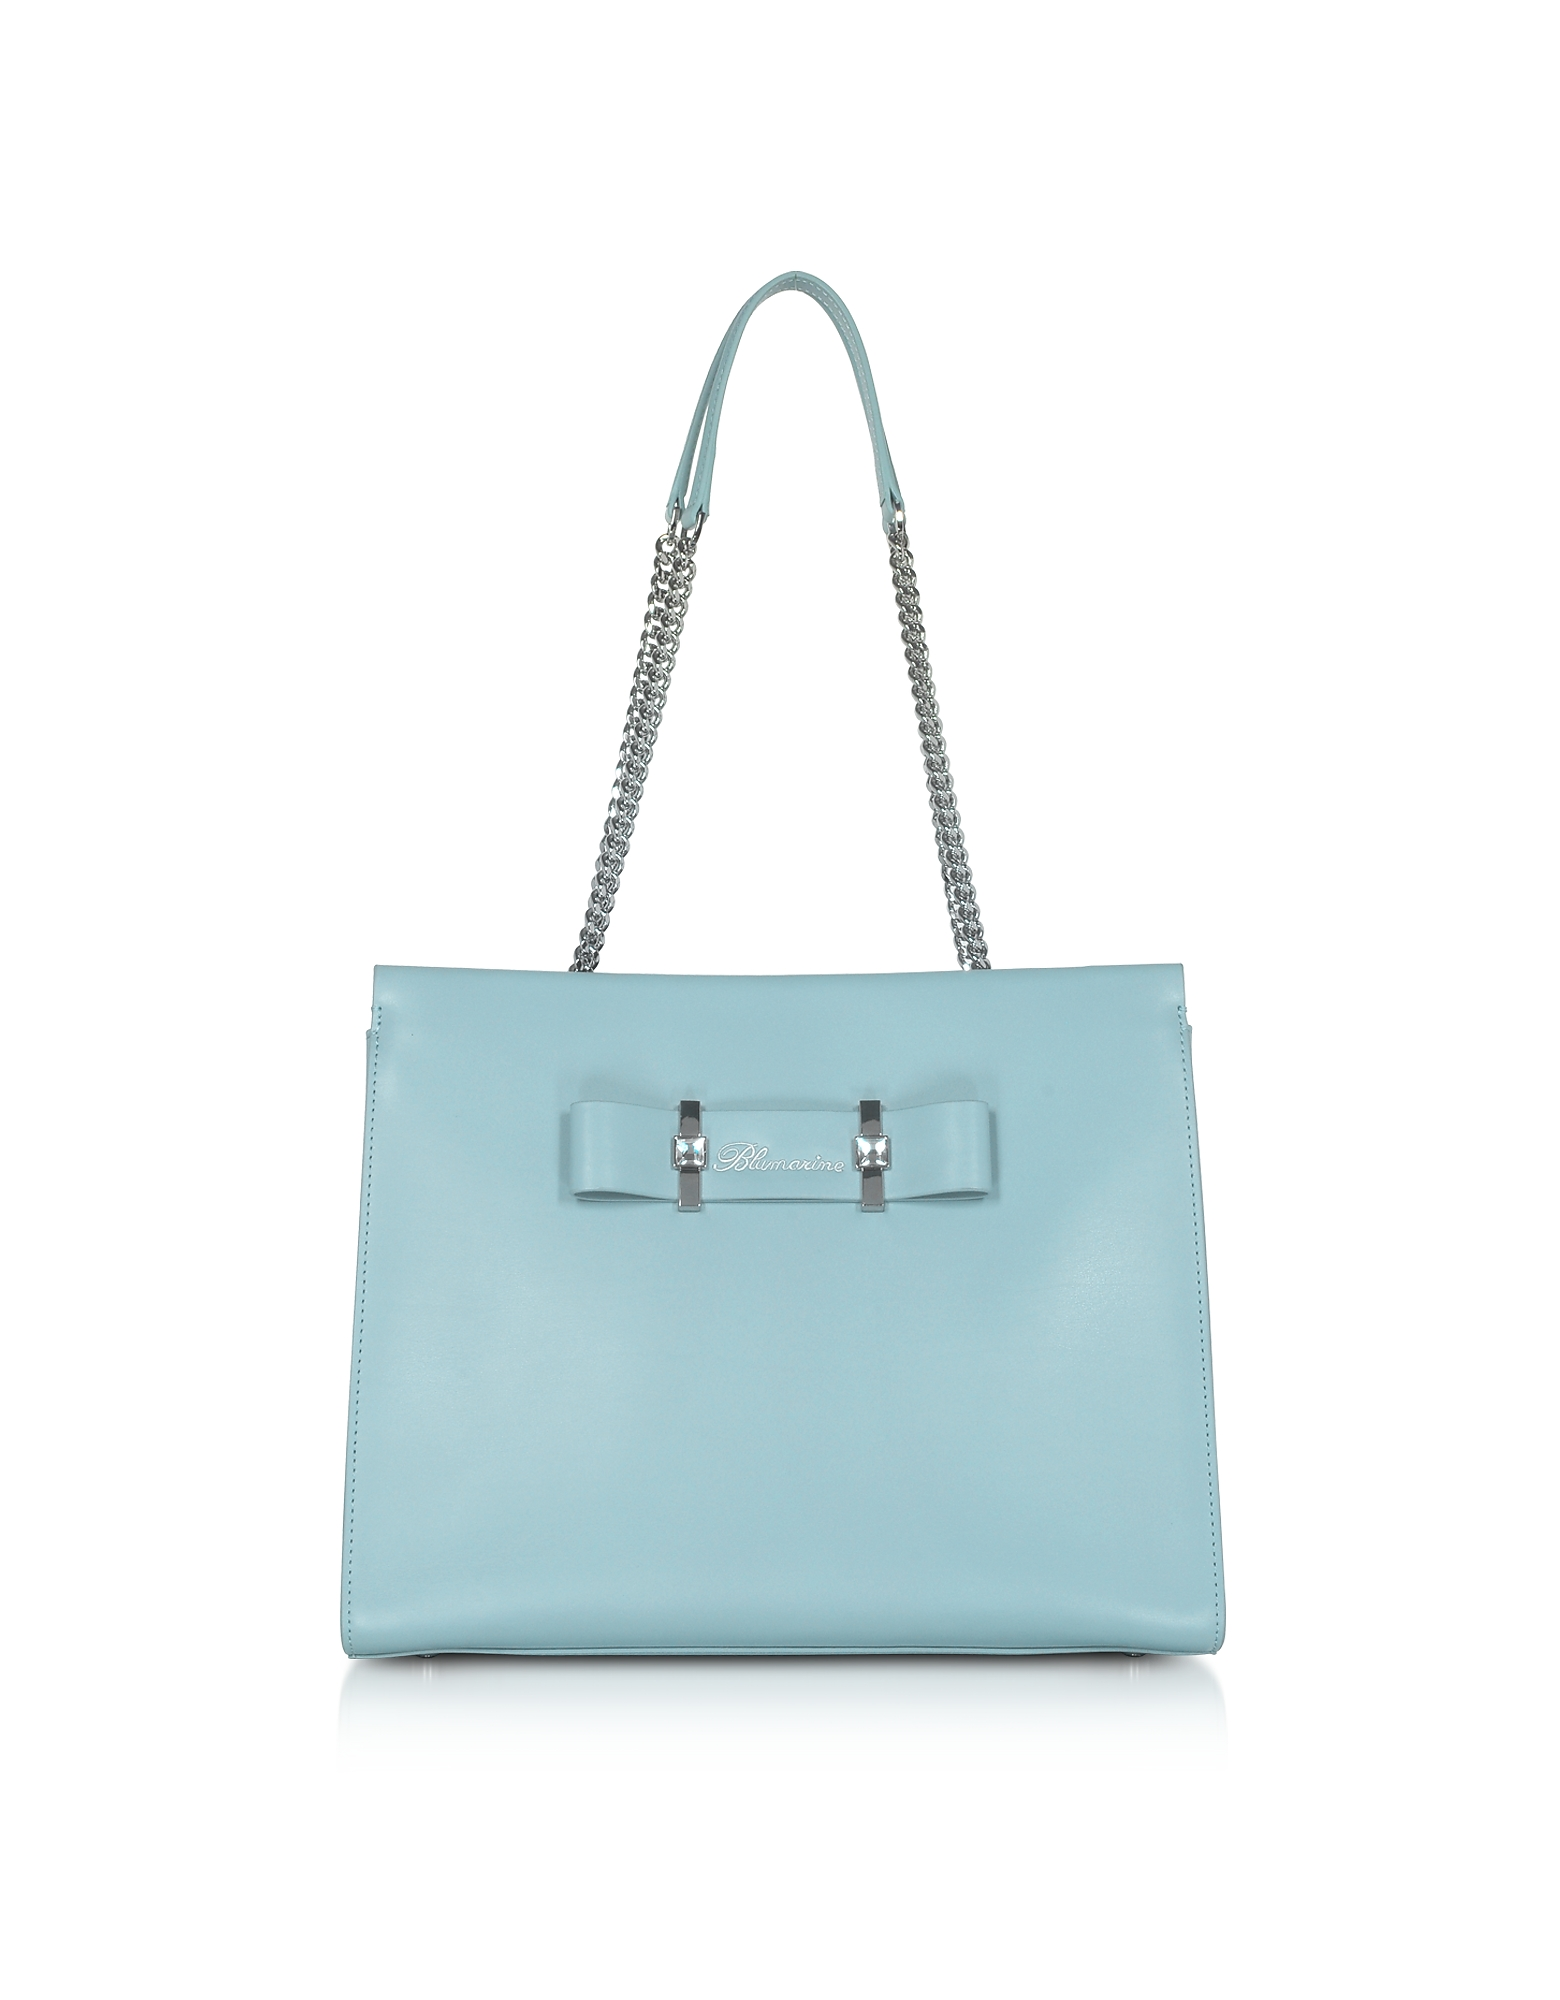 Blumarine Designer Handbags, Charlotte Avio Blue Leather Top Handle Bag